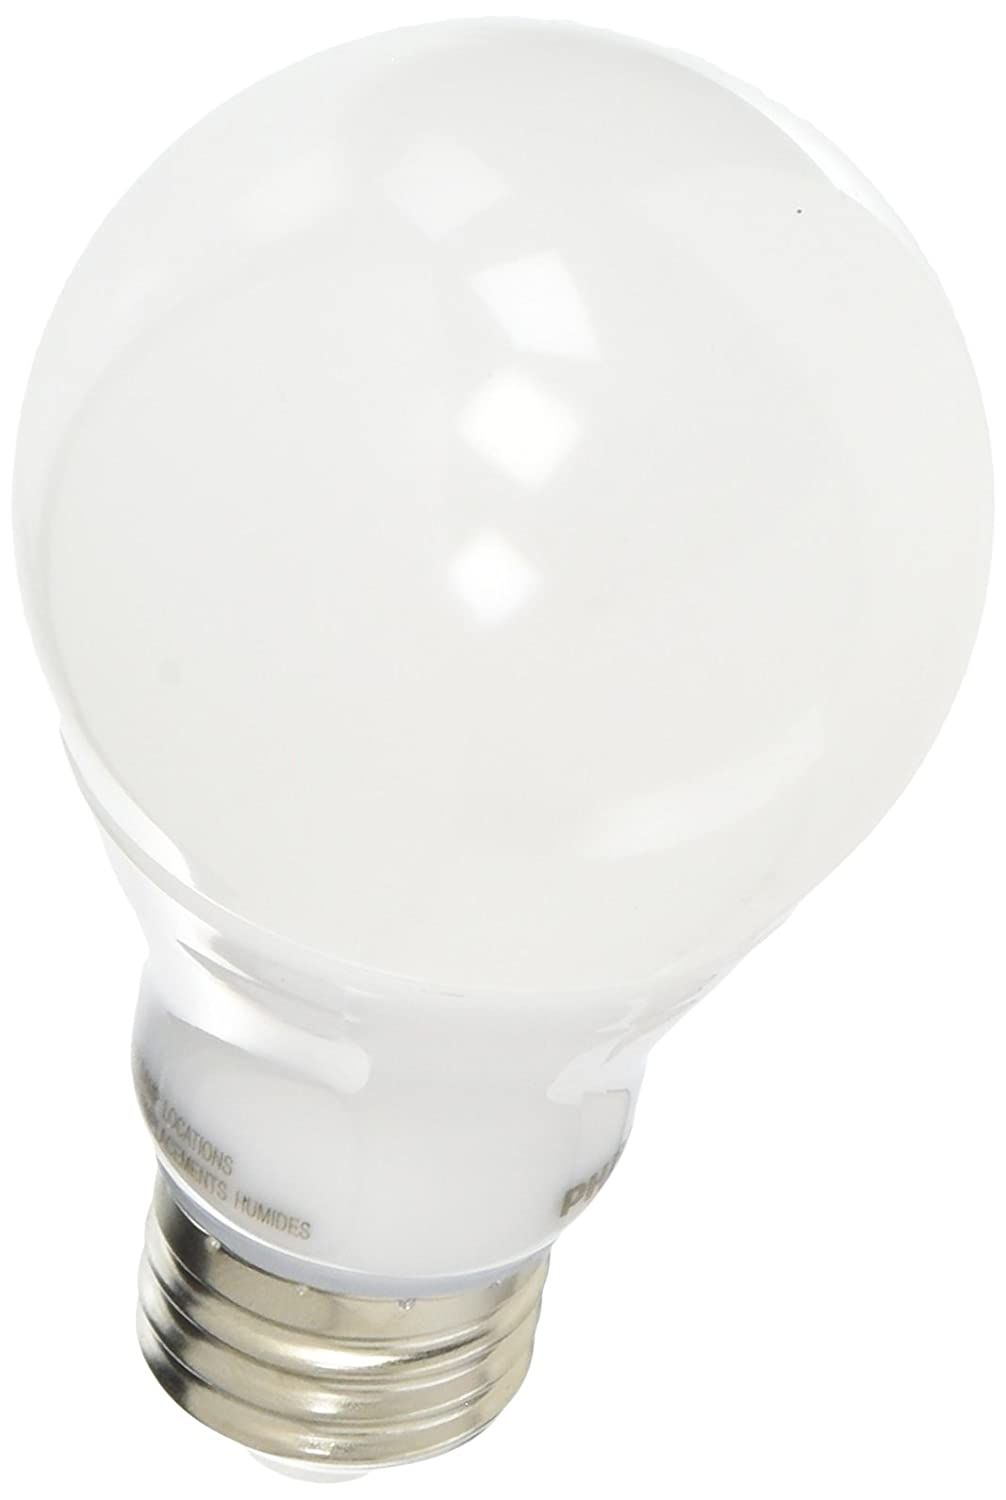 Philips 455840 60W Equivalent 2200K-2700K A19 Dimmable LED Warm Glow ...